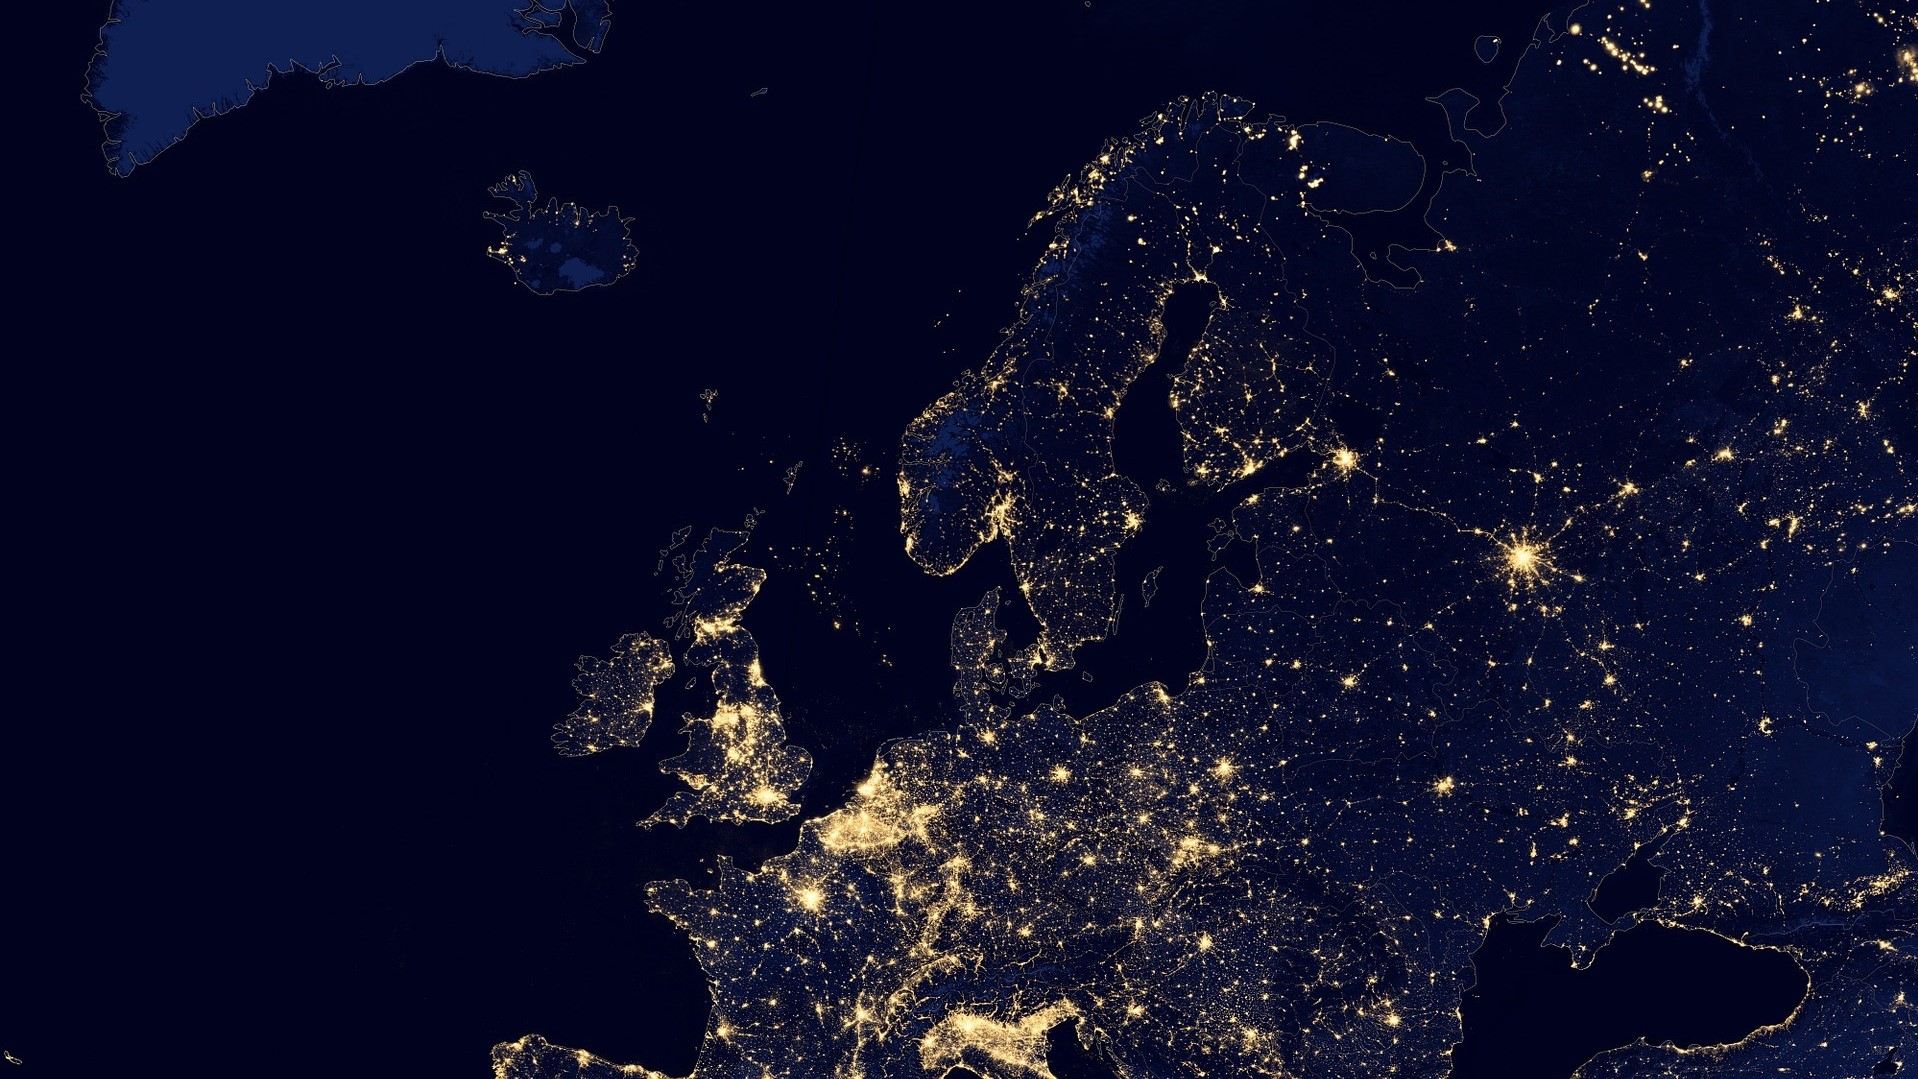 Europe during night